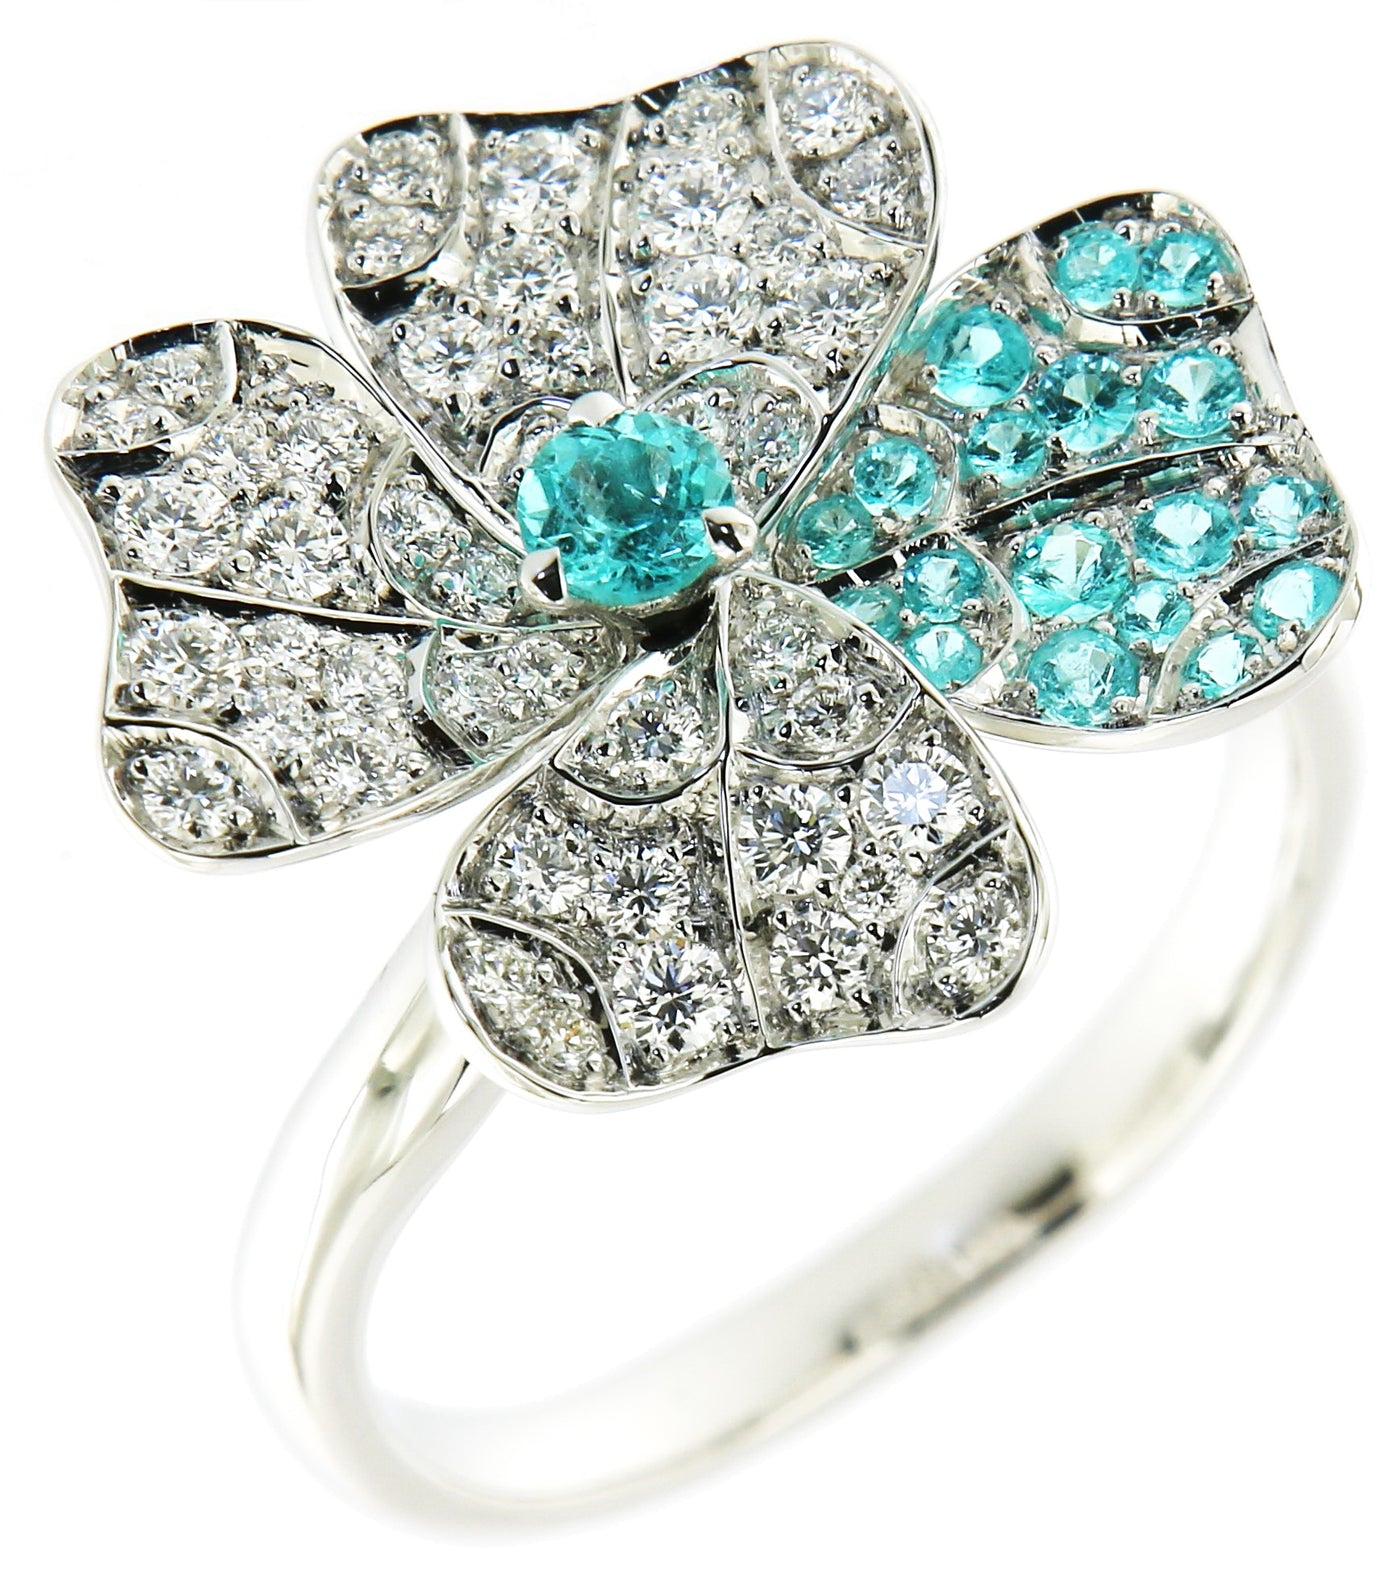 Ring White Gold with Paraiba Tourmalines and White Diamonds